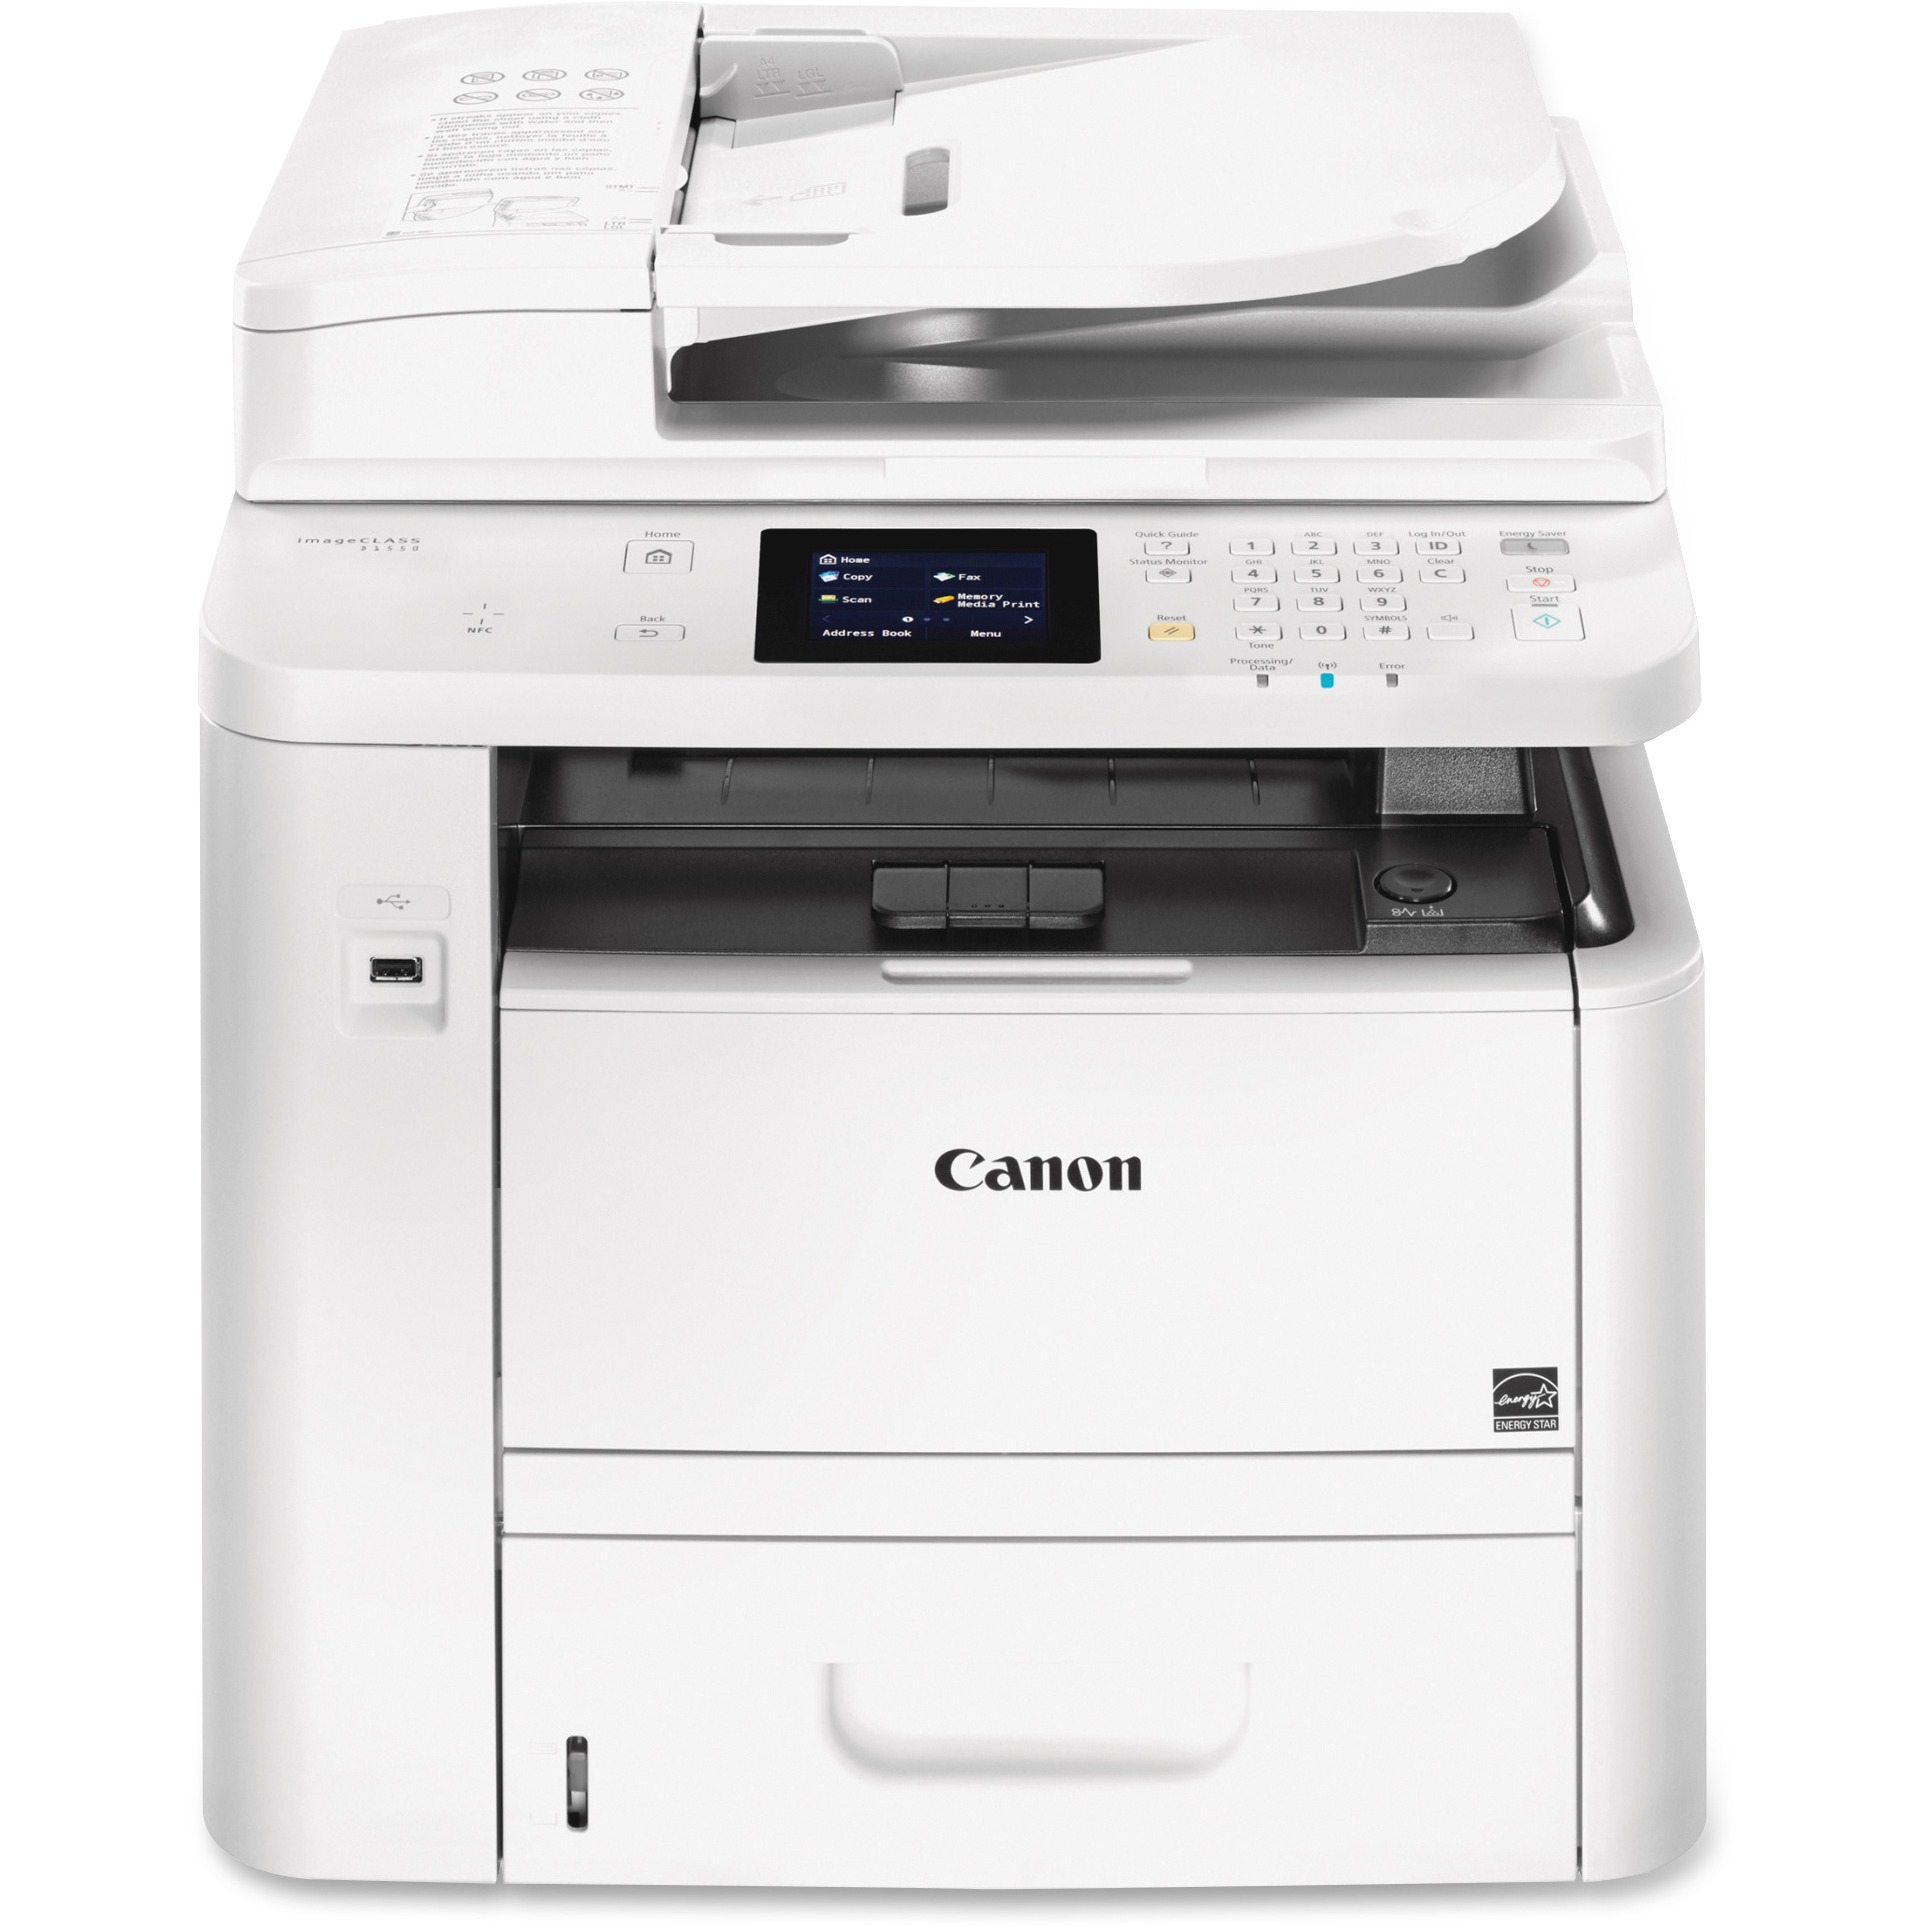 Canon iMageClass D1550 4-in-1 Multifunction Laser Copier, Copy Fax Print Scan by Canon